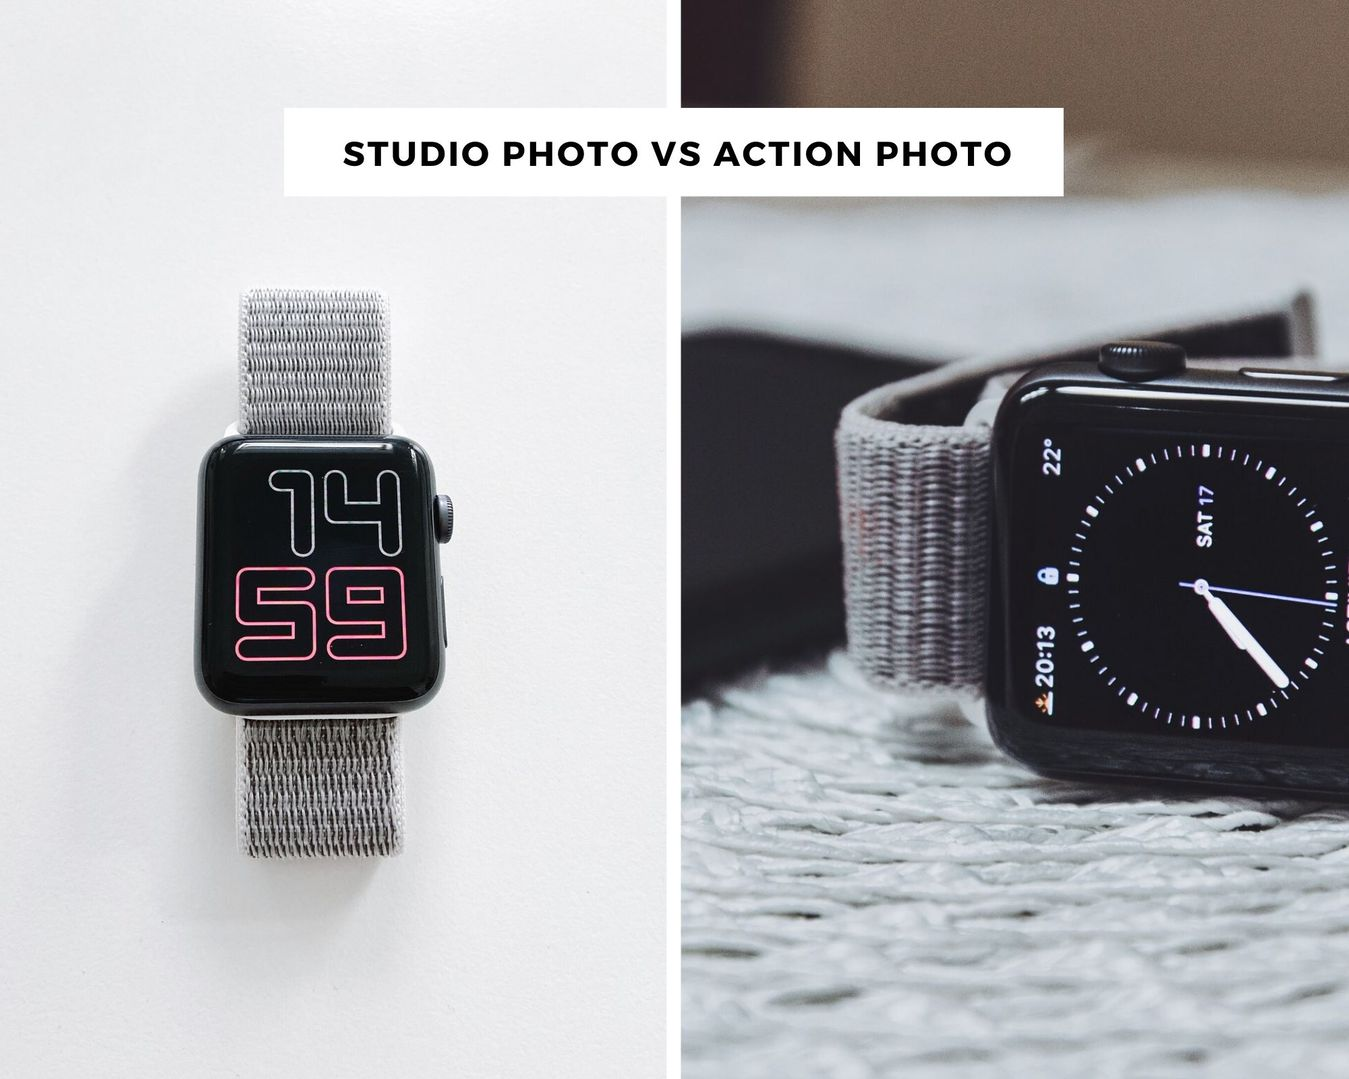 Studio photo vs action photo example of a smart watch